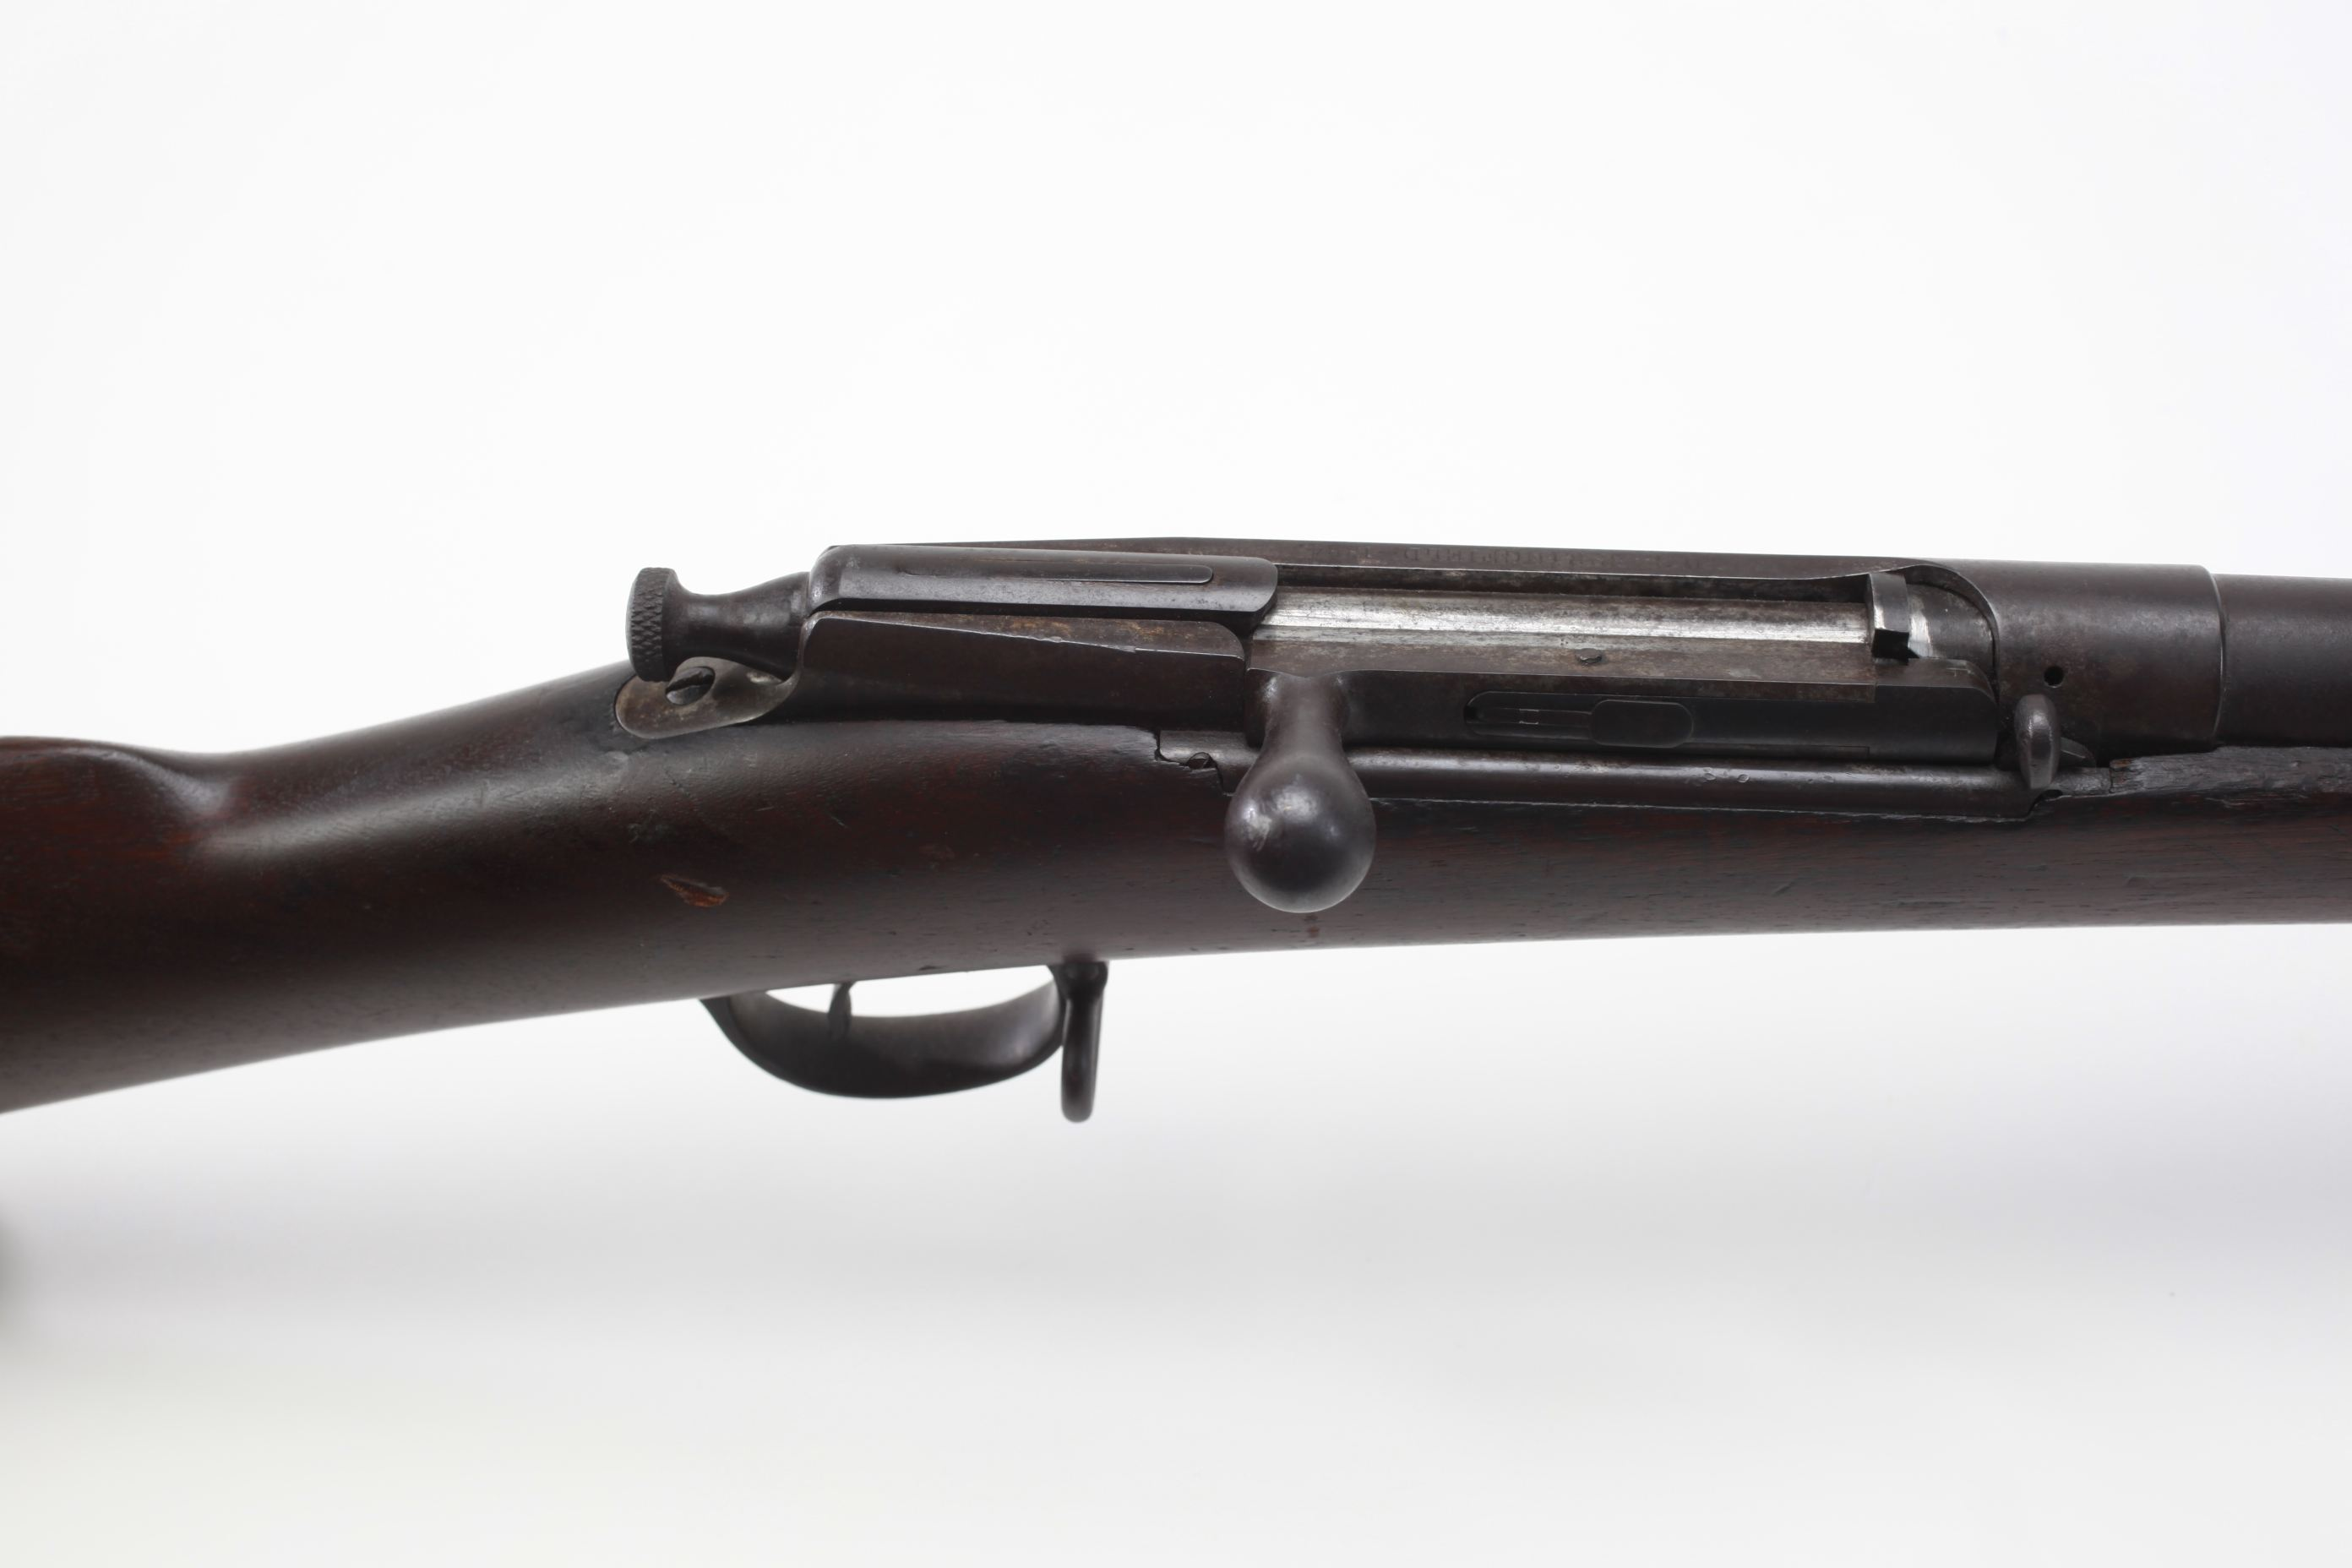 U.S. Springfield Model 1882 Chaffee Reese Bolt Action Magazine Rifle